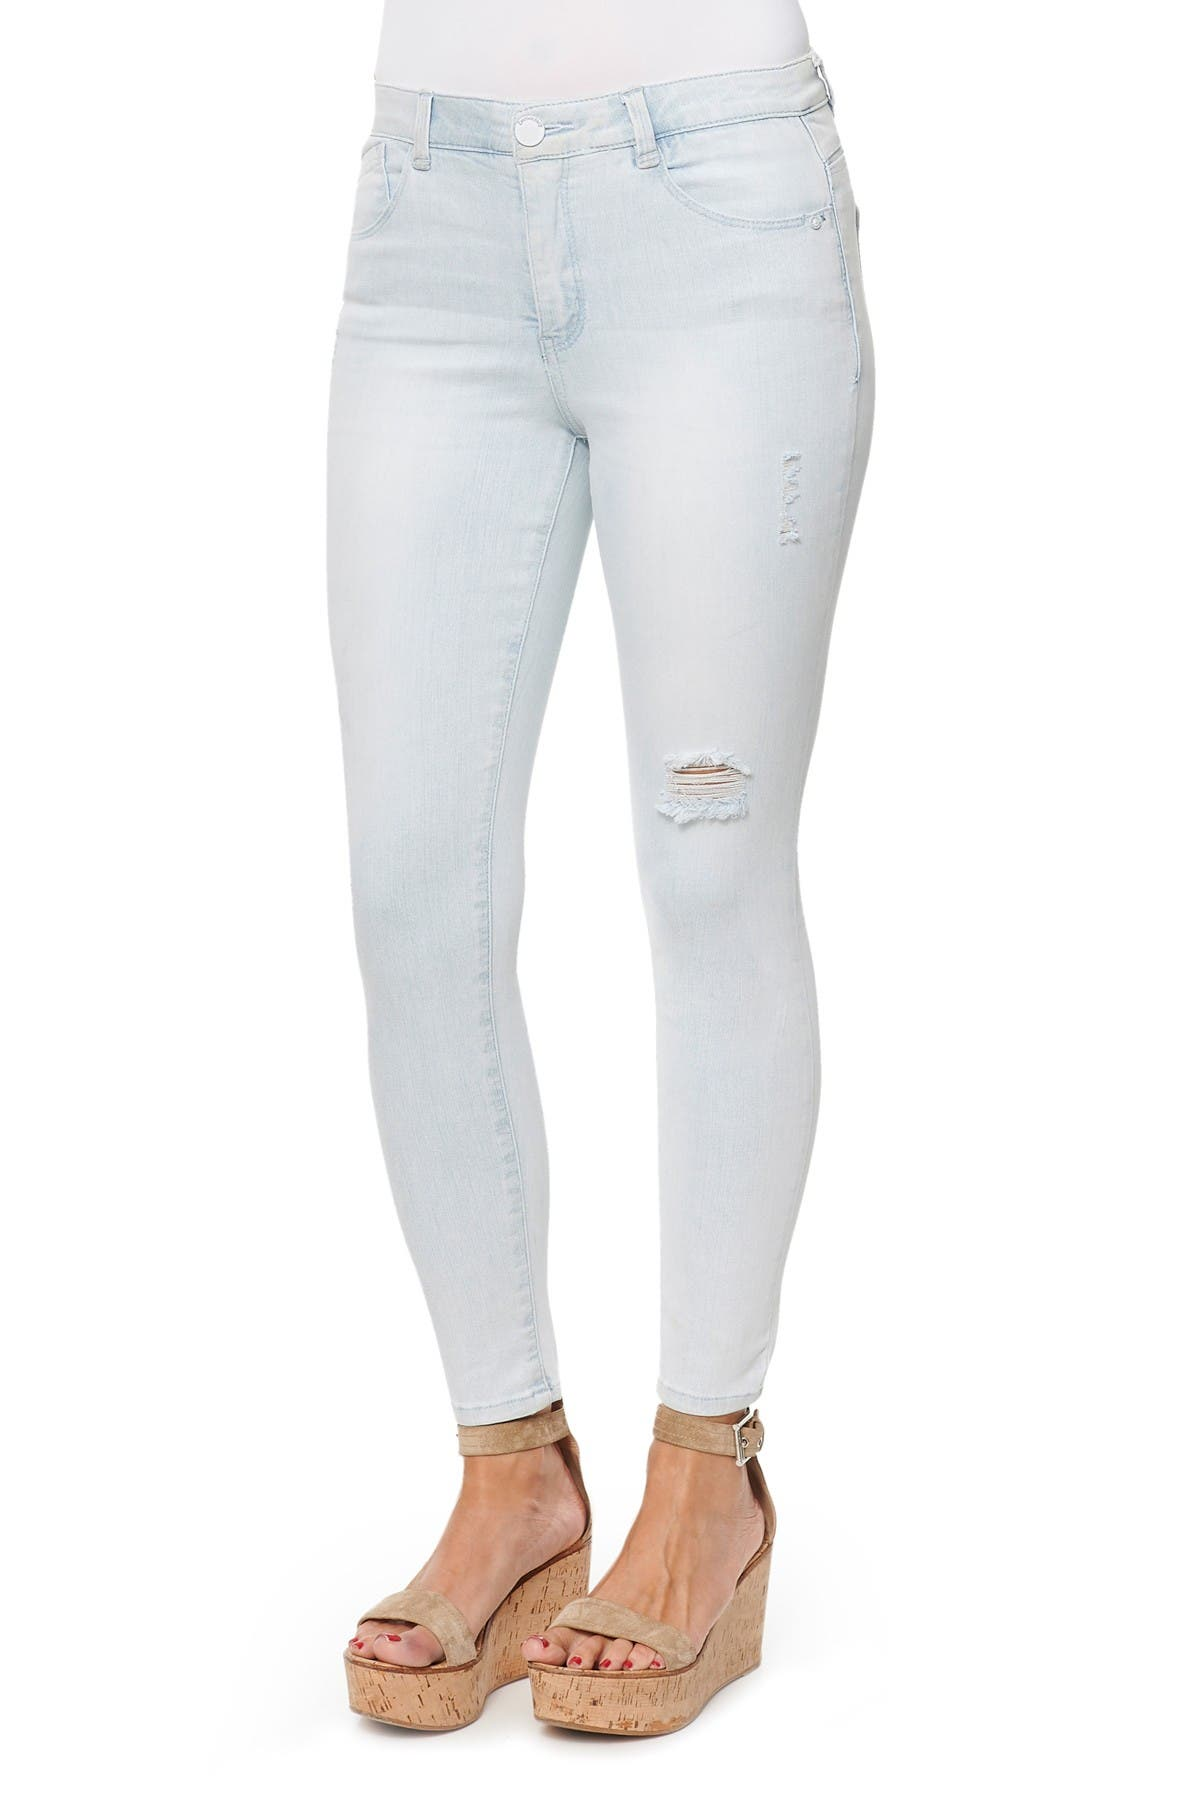 Image of Democracy Luxe High Rise Ankle Skinny Jeans